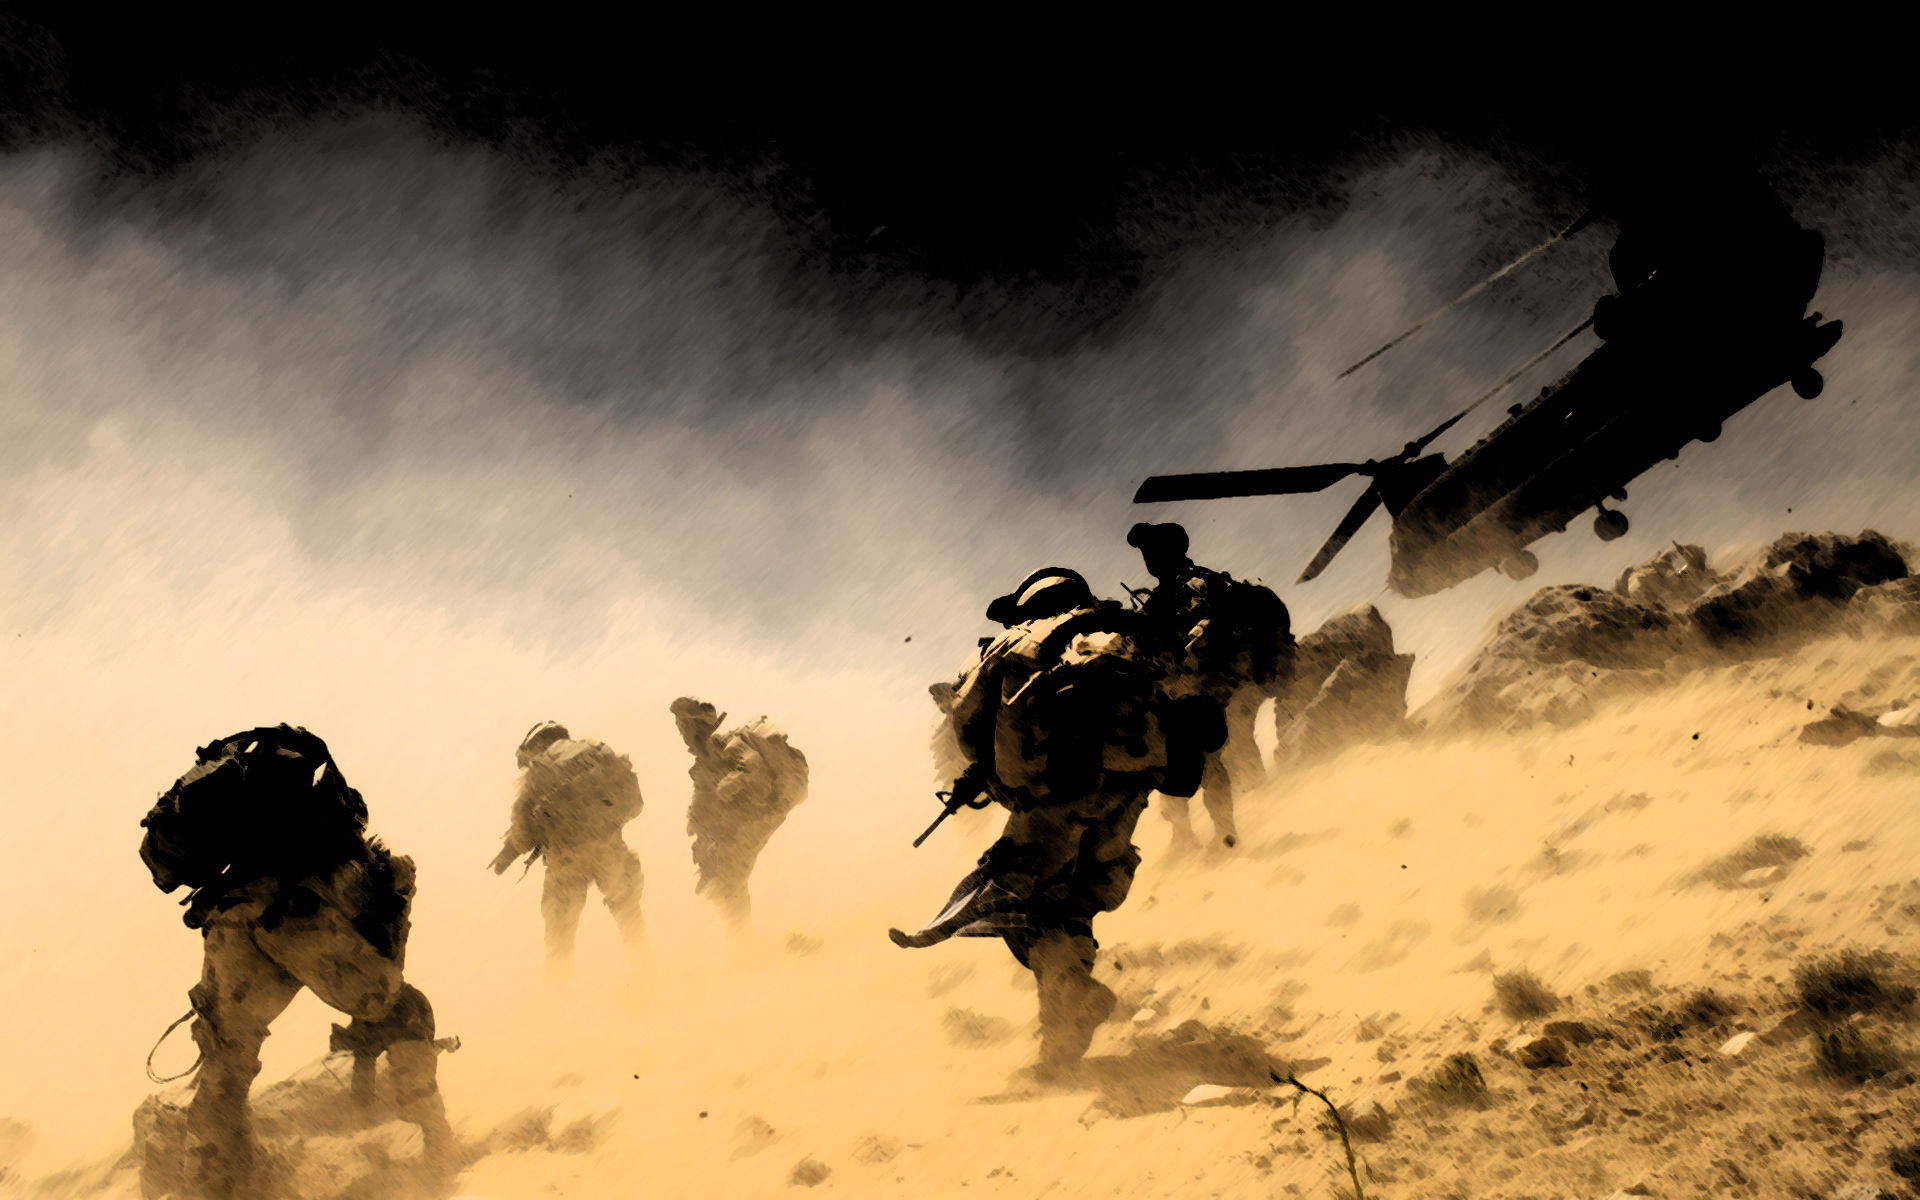 us army widescreen high resolution wallpaper download us army images 1920x1200